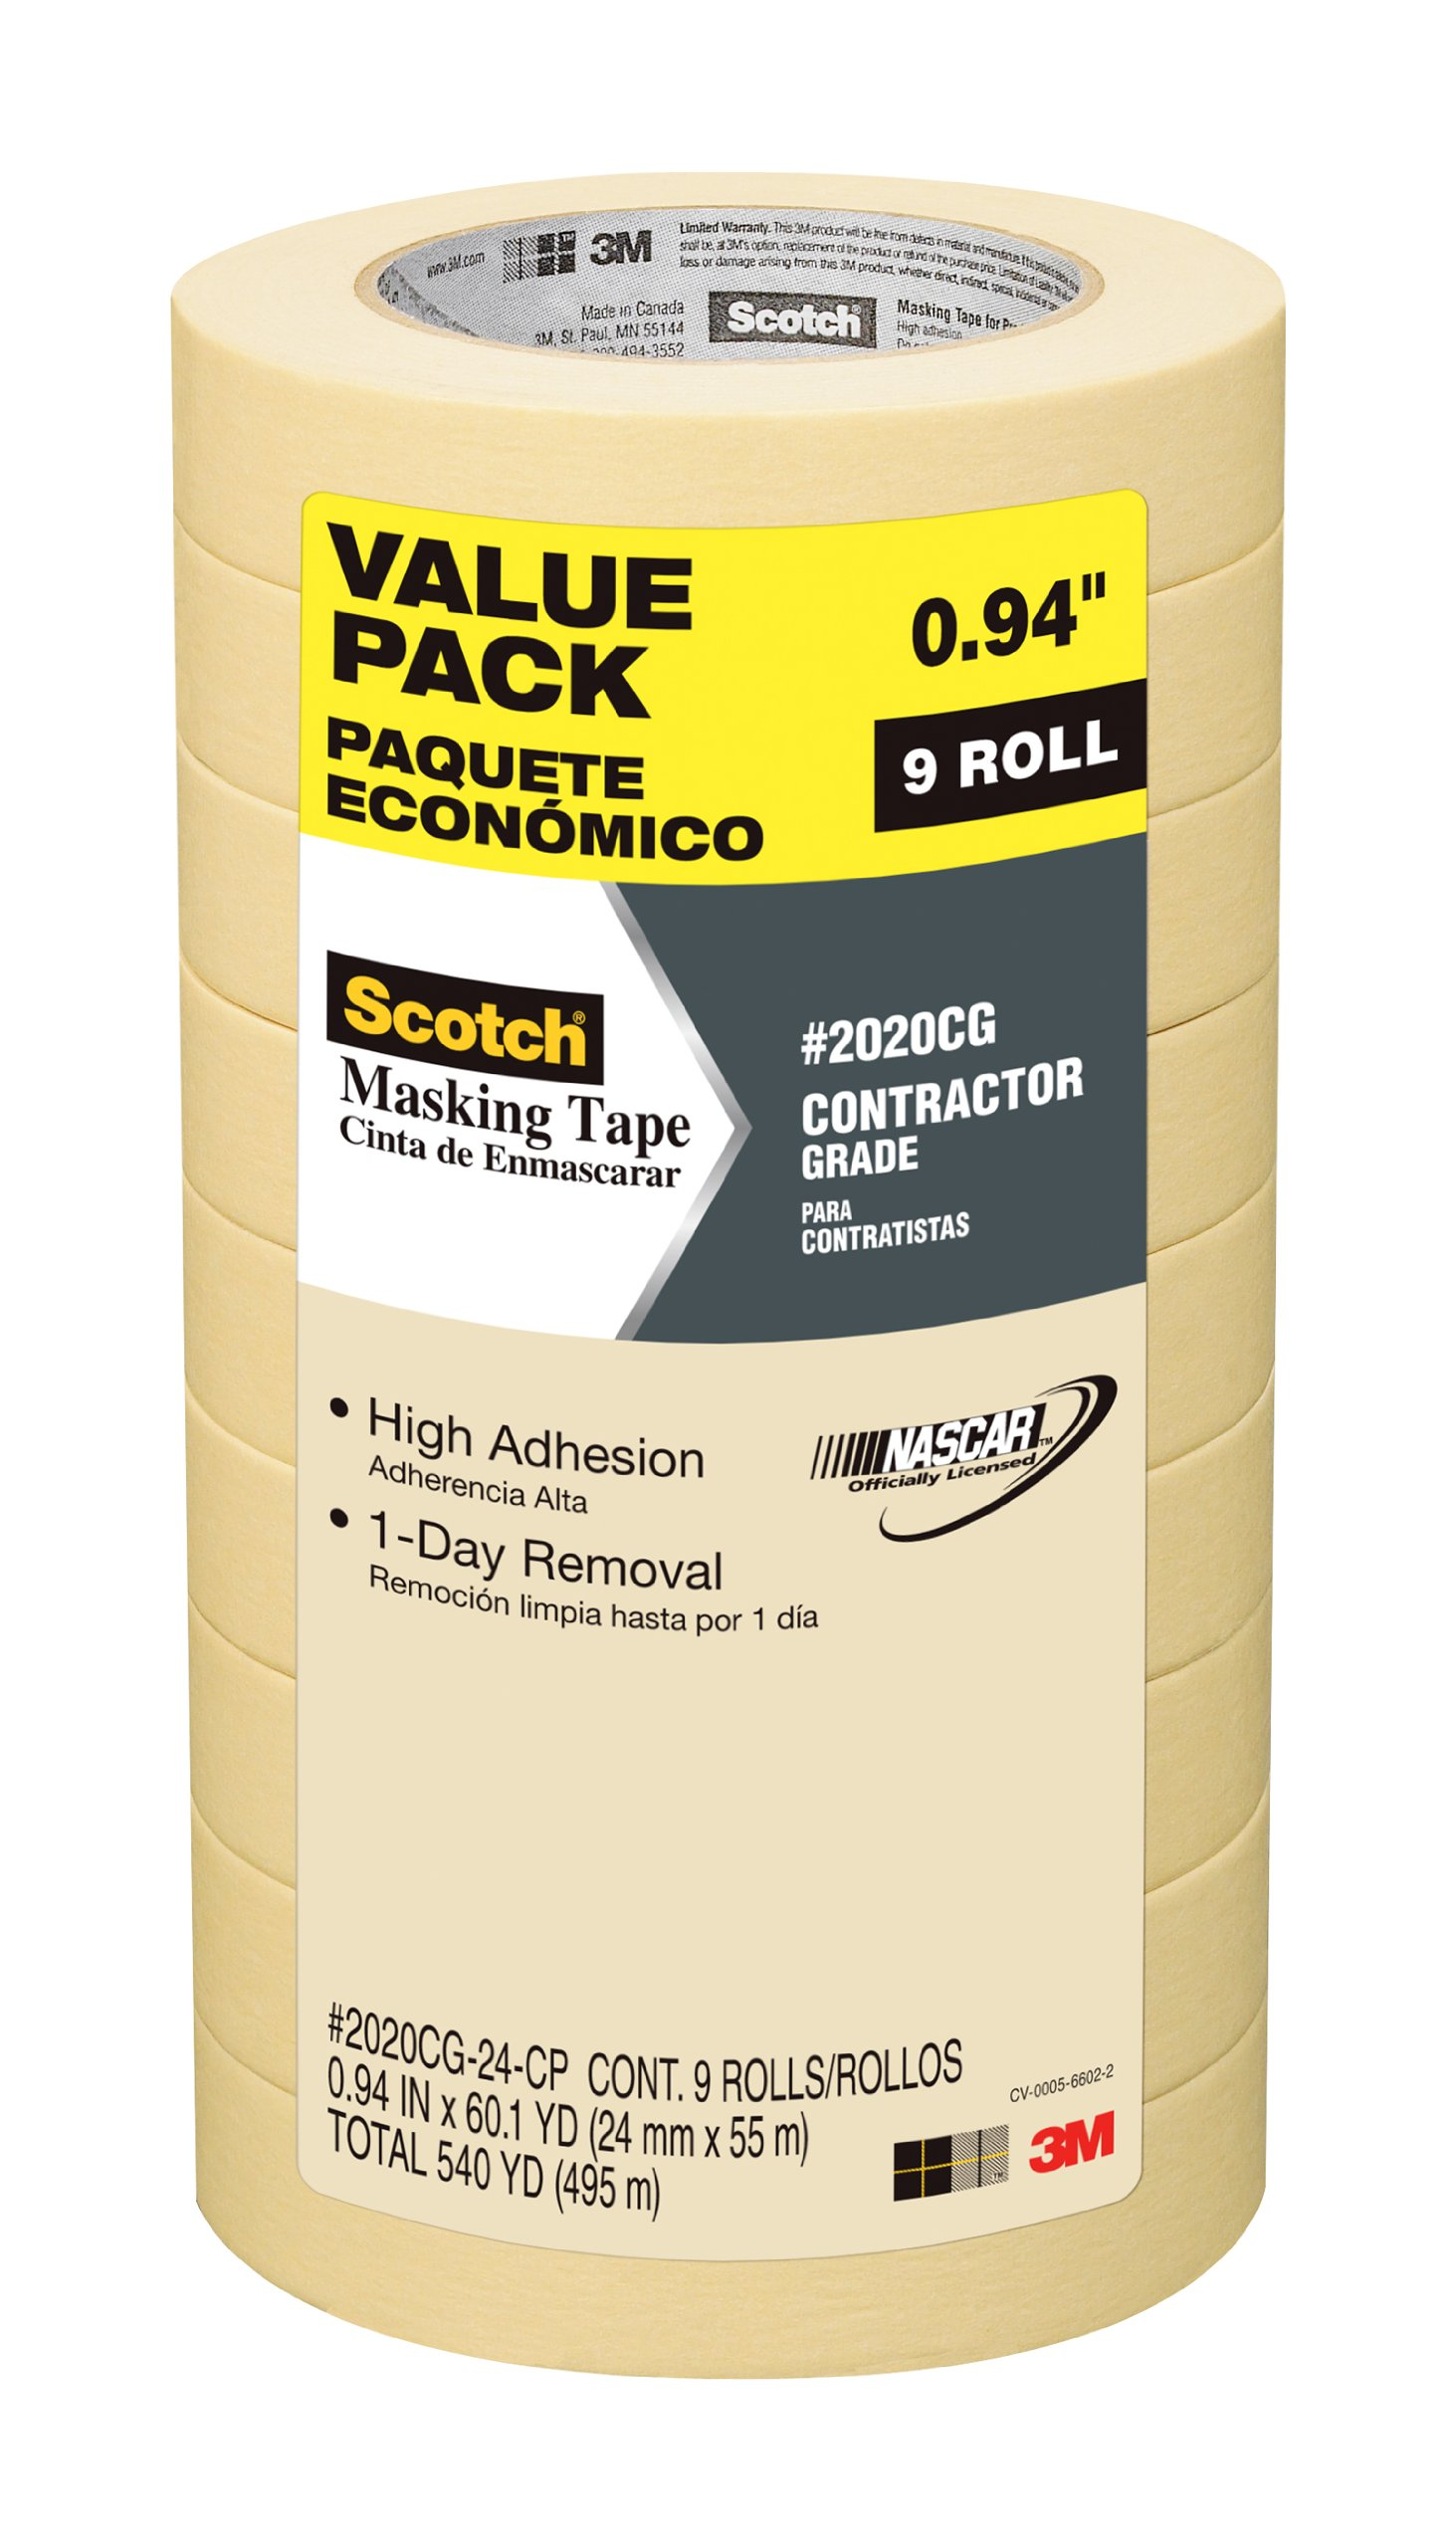 Scotch Contractor Grade Masking Tape, 2020CG-24-CP, 0.94-Inch by 60.1-Yards, 9 Rolls